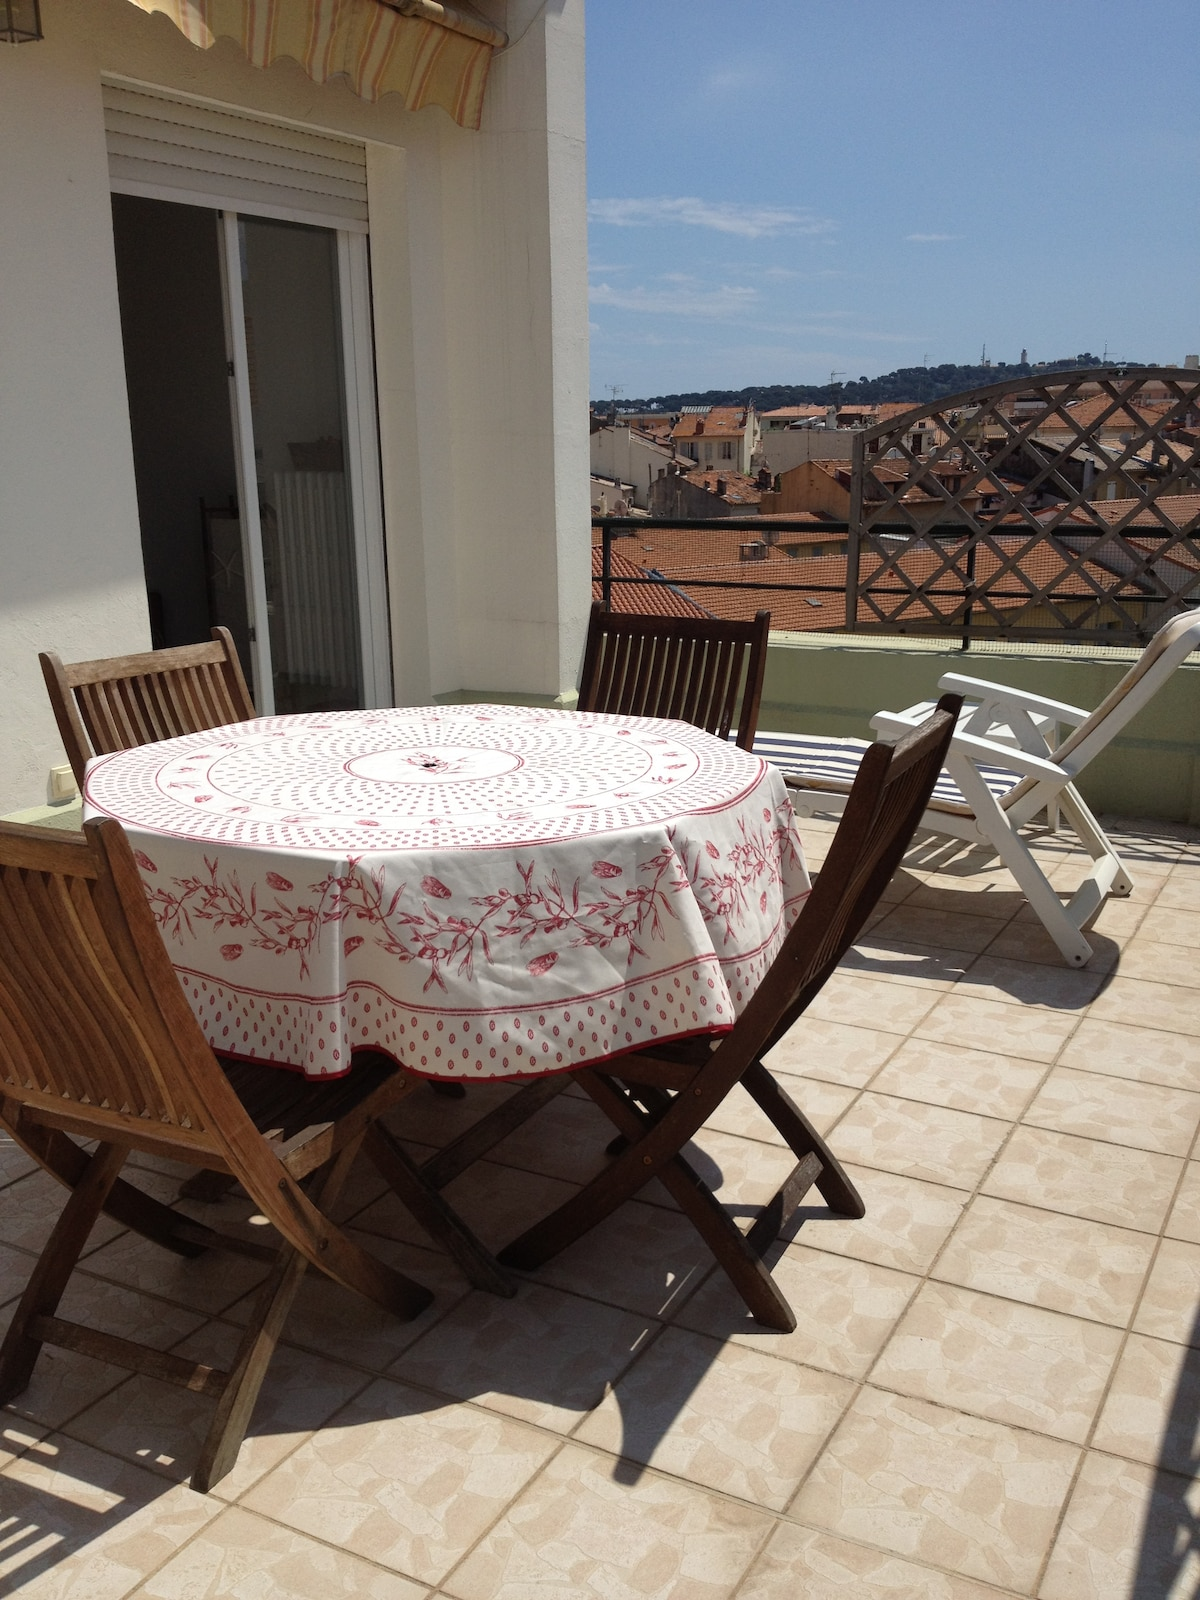 Oversize terrace facing west - perfect for taking chilled wine at the end of the day